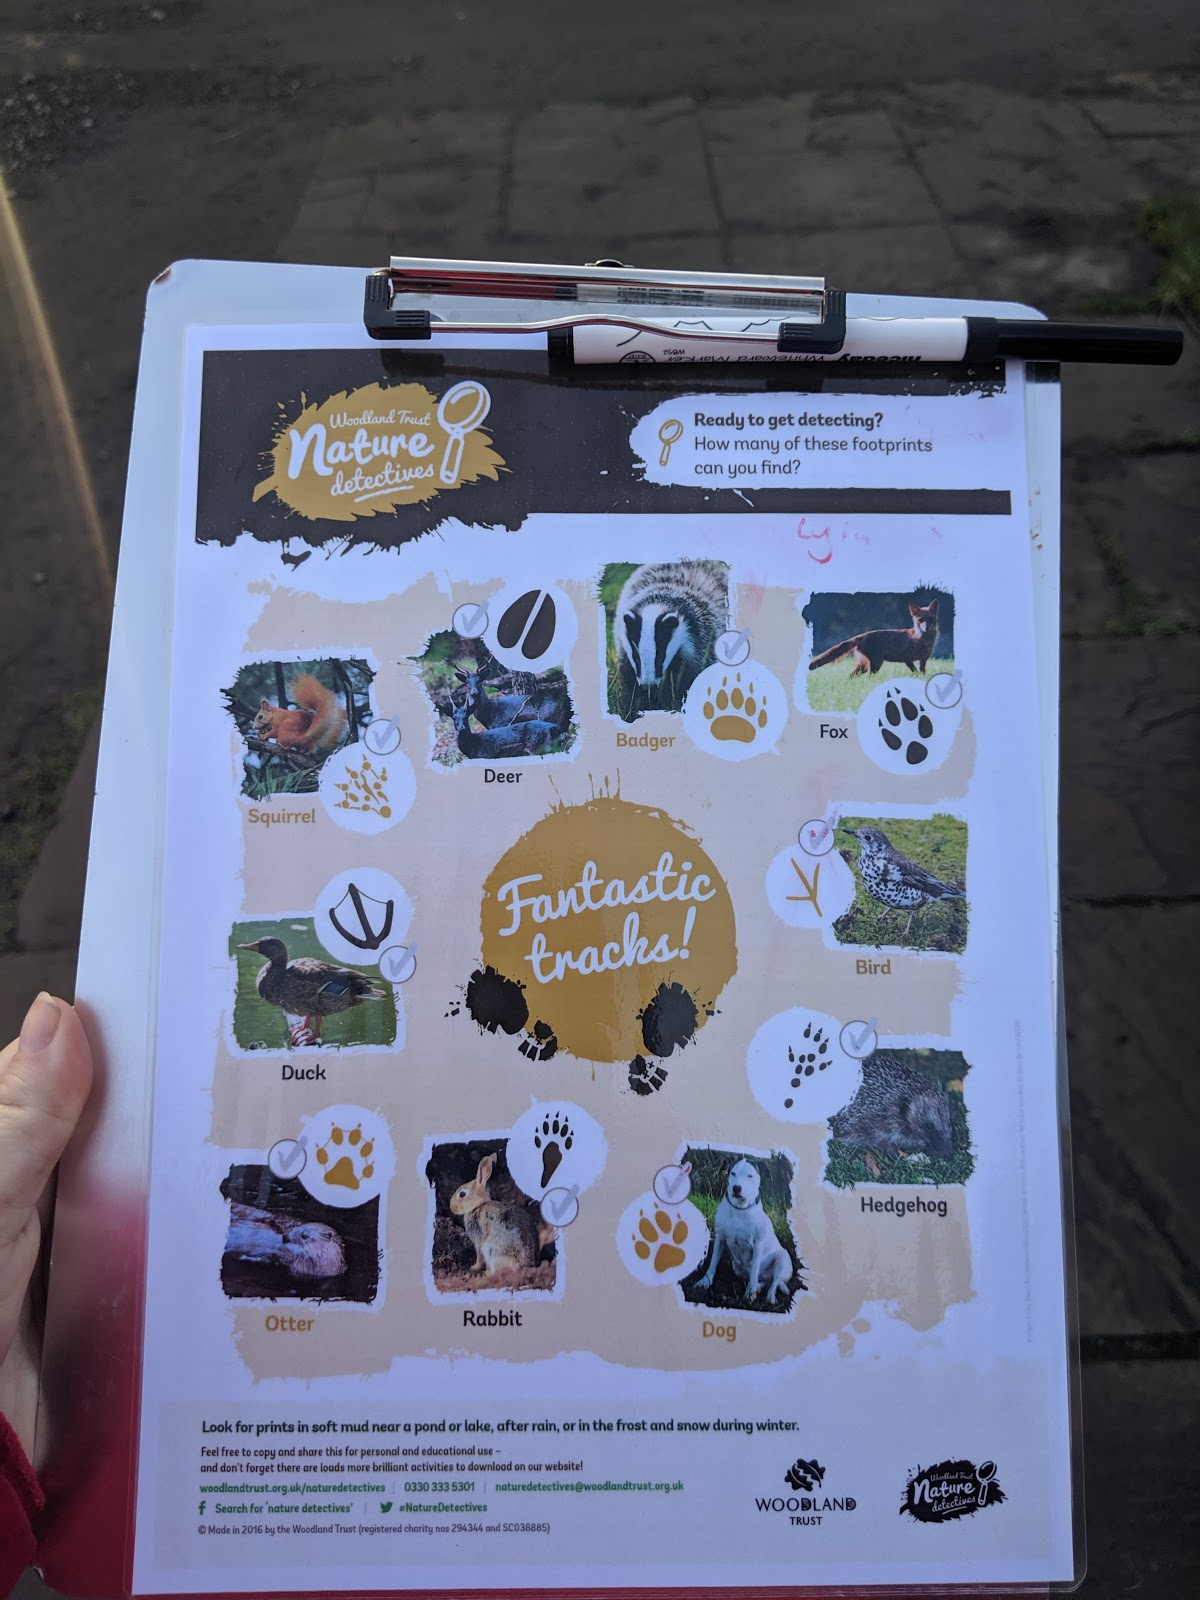 Howick Hall Snowdrop Walk & Sensory Garden - animal tracks worksheet